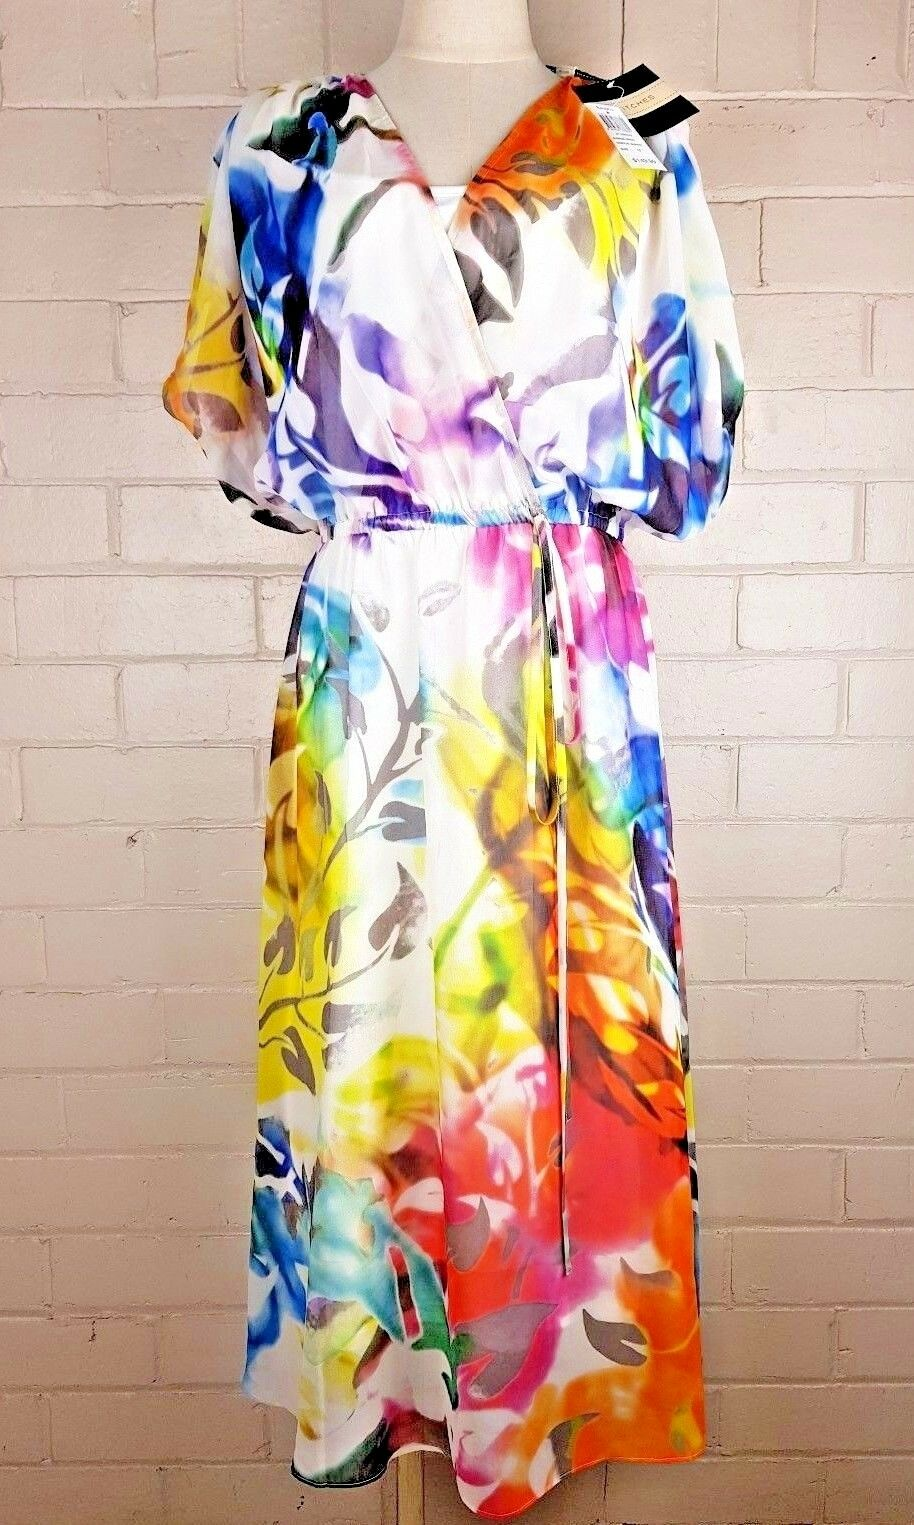 Stitches Tropical Sunrise Print Sheer Summer Dress with Slip  149.99 RRP